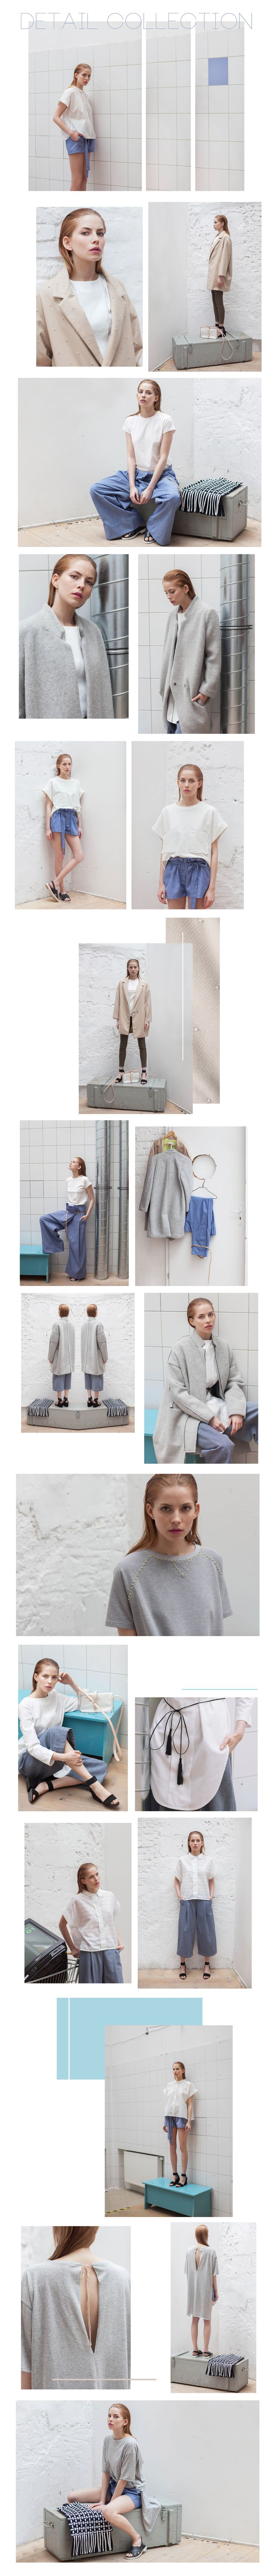 Detail Collection '15 for MONOLOG